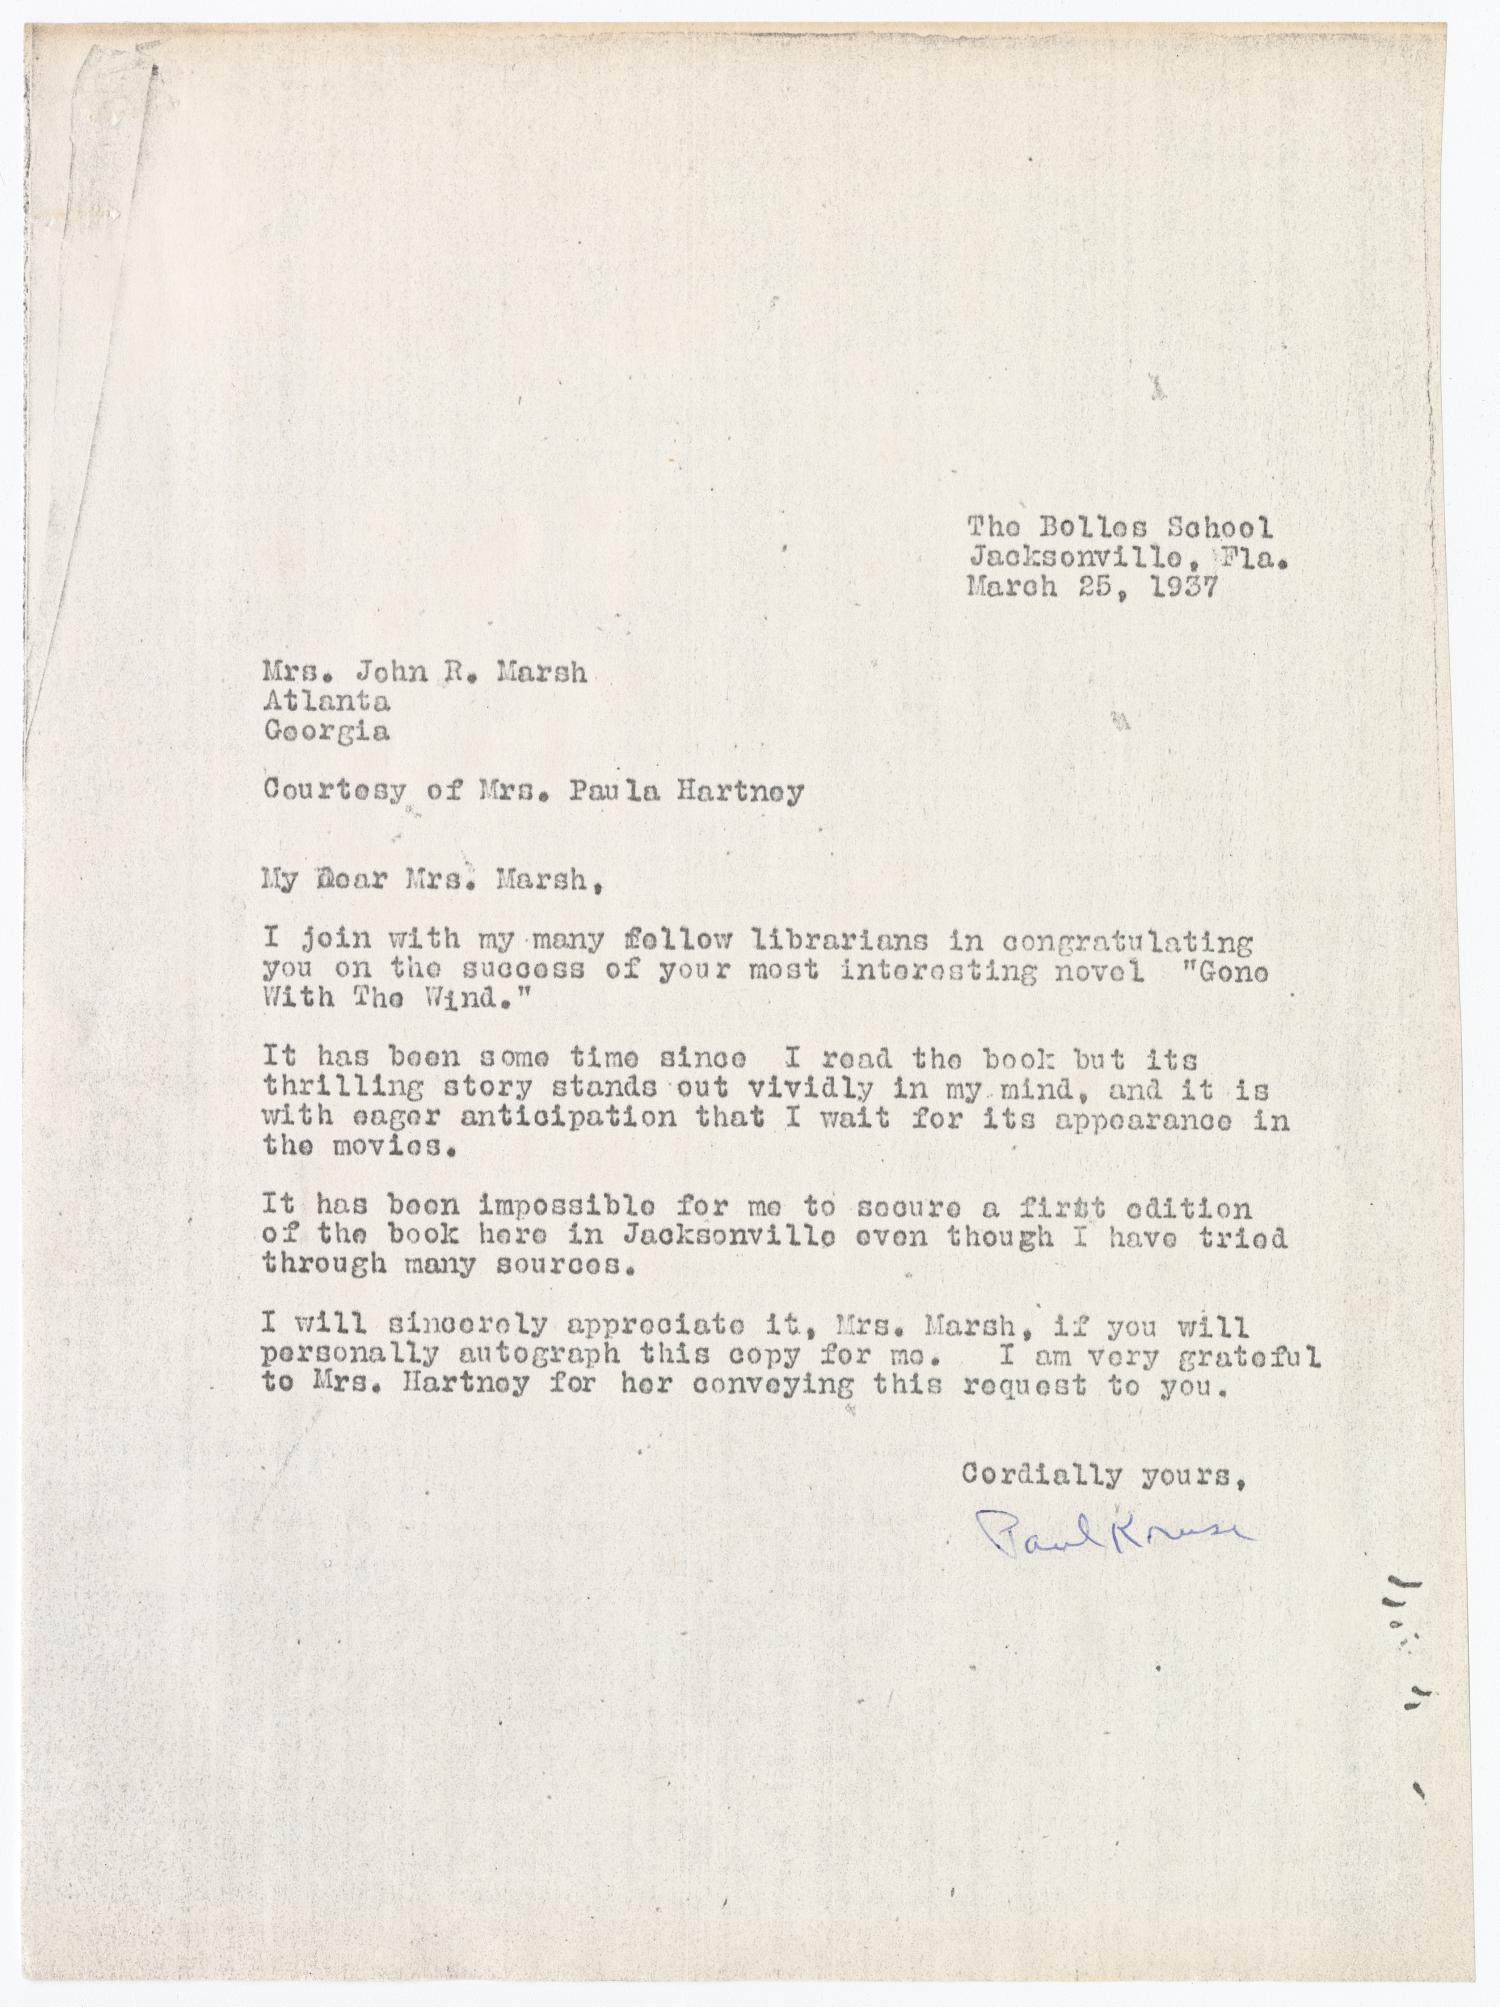 A typed letter addressed to Margaret Mitchell, signed by Paul Kruze.